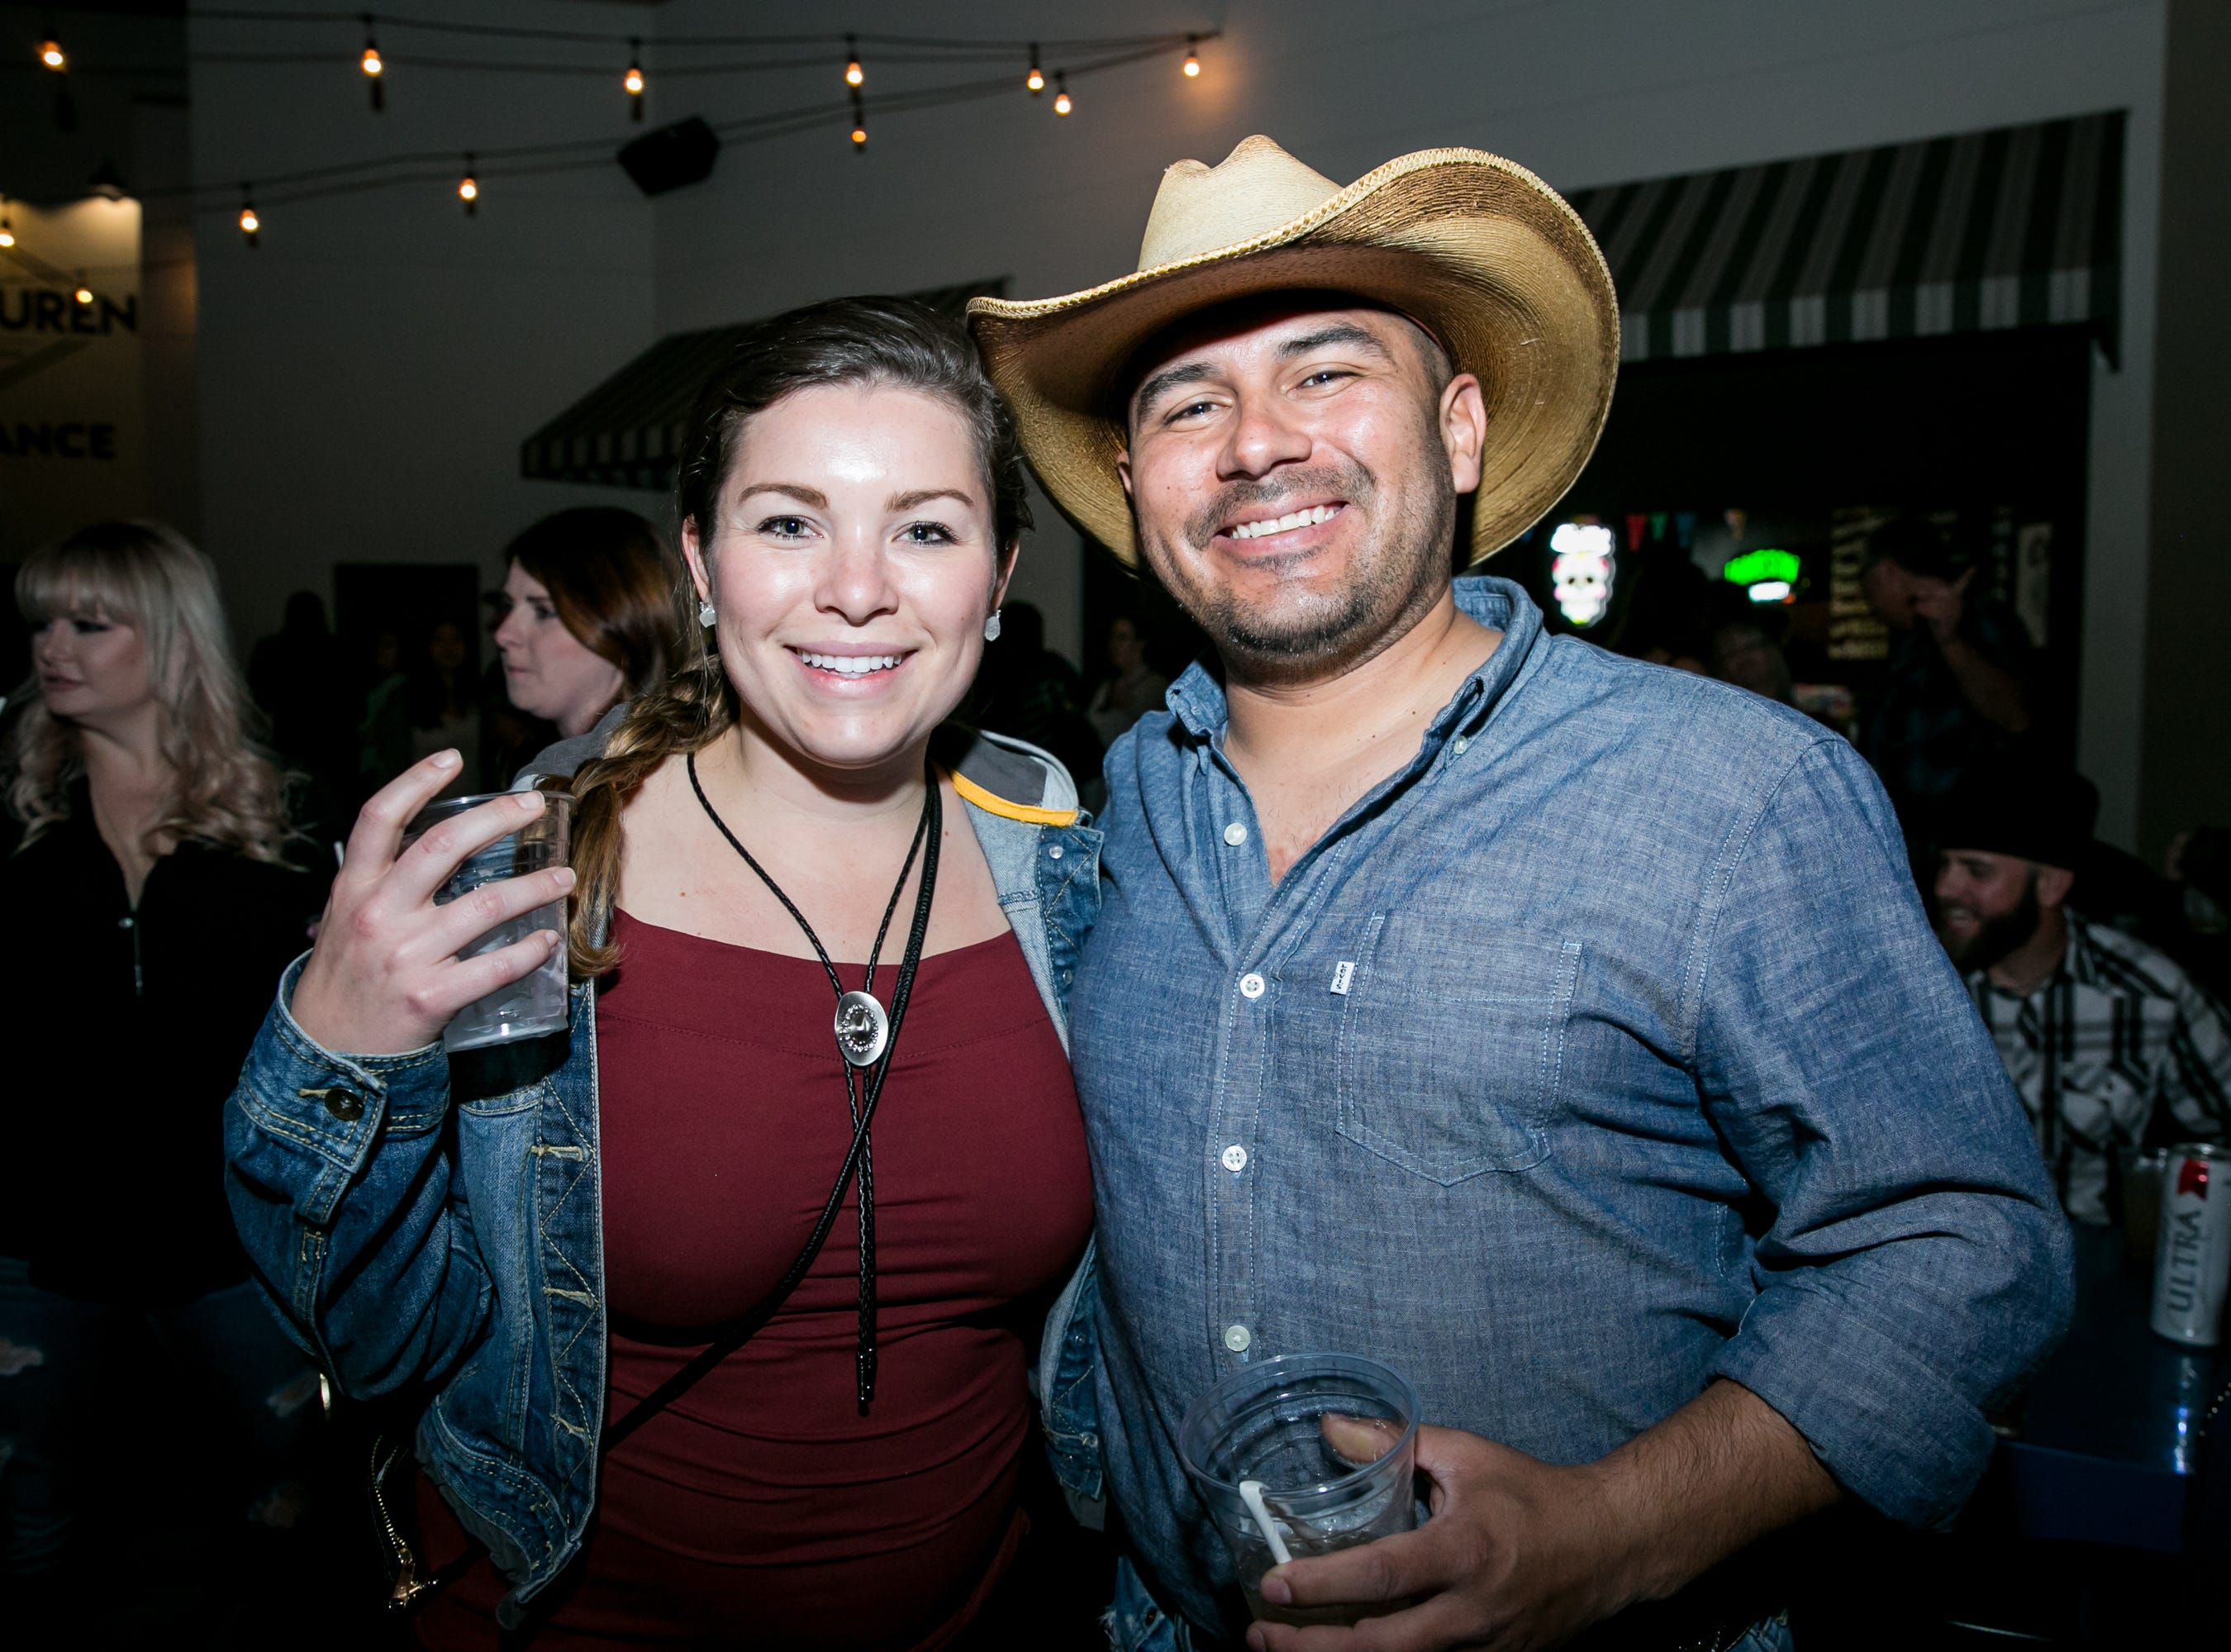 This couple looked great in denim during the KMLE Country 90's Throwback at The Van Buren on Friday, Jan. 11, 2019.